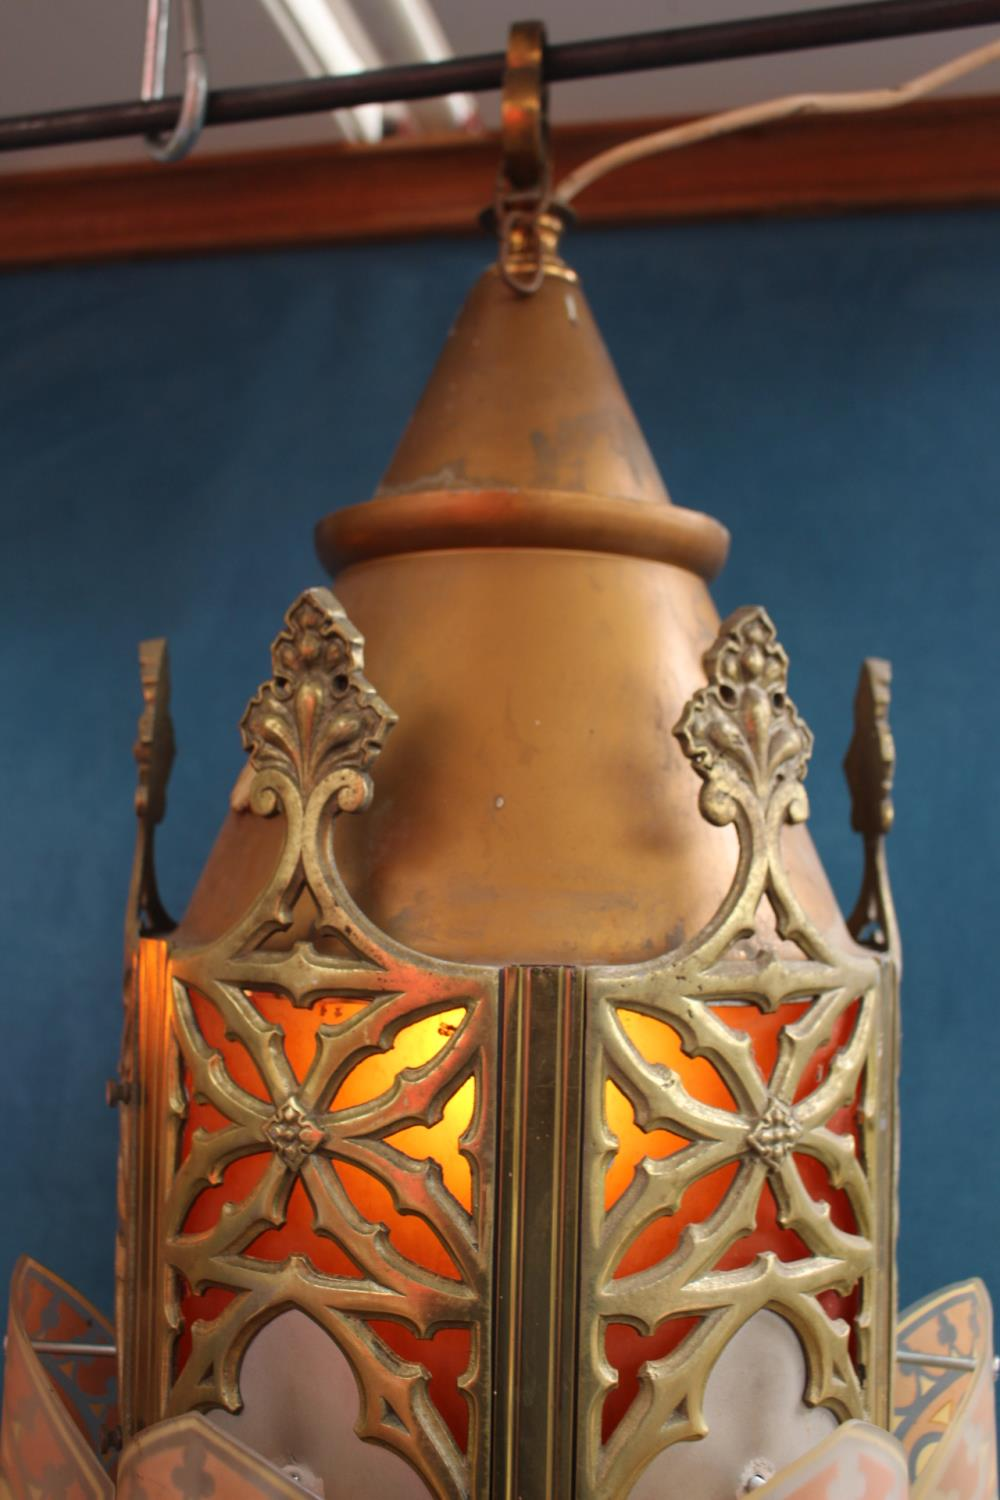 Pair of brass and glass hanging lanterns - Image 2 of 3